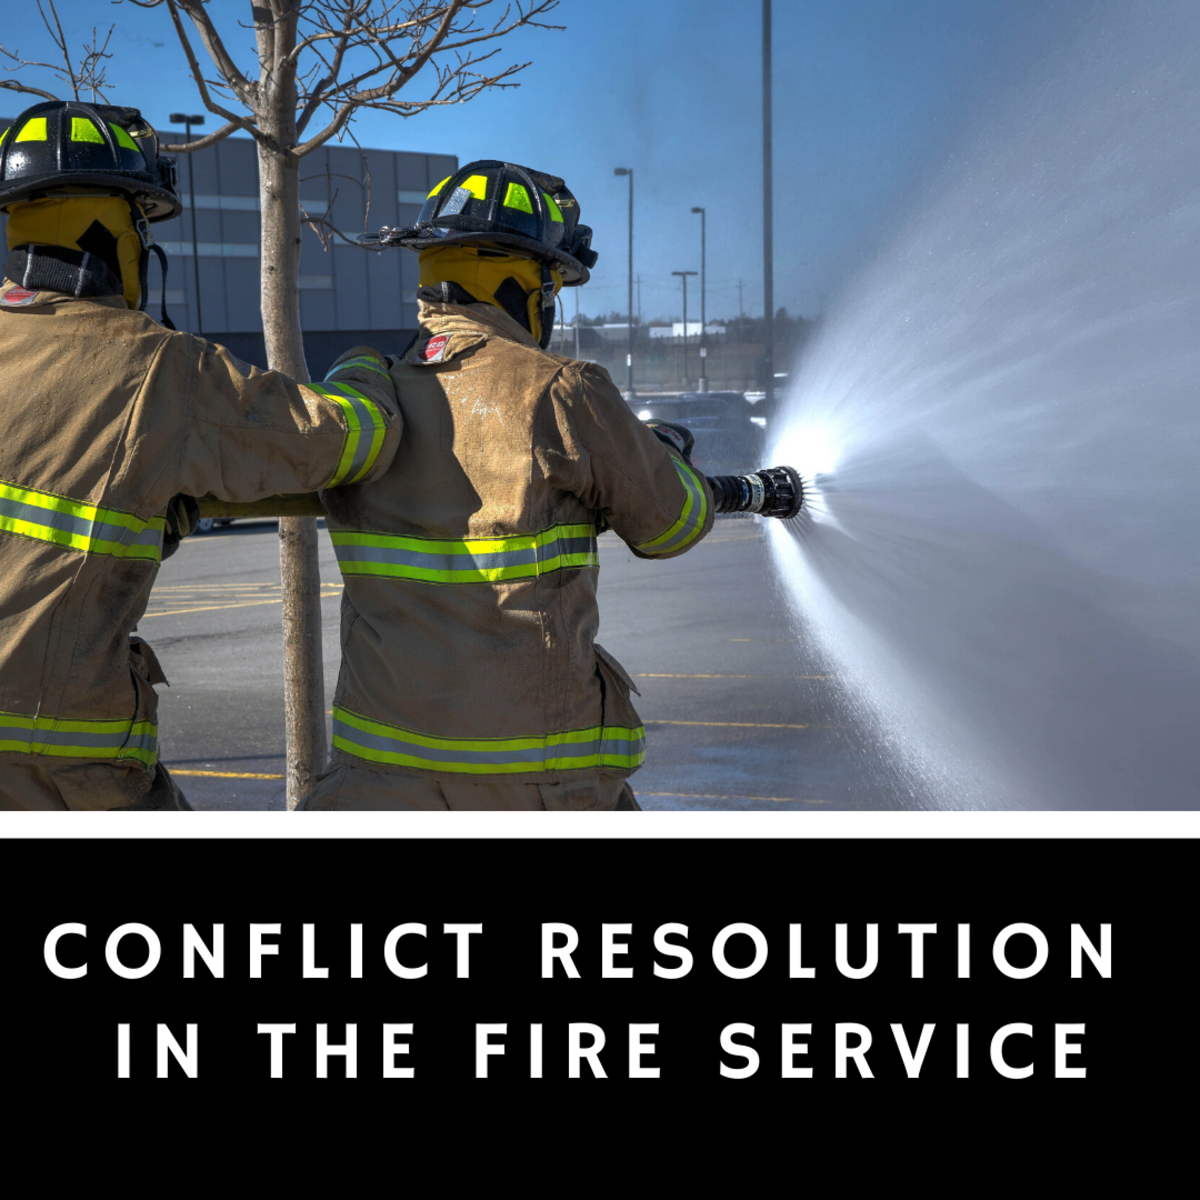 Learning how to resolve conflict will make your department stronger.